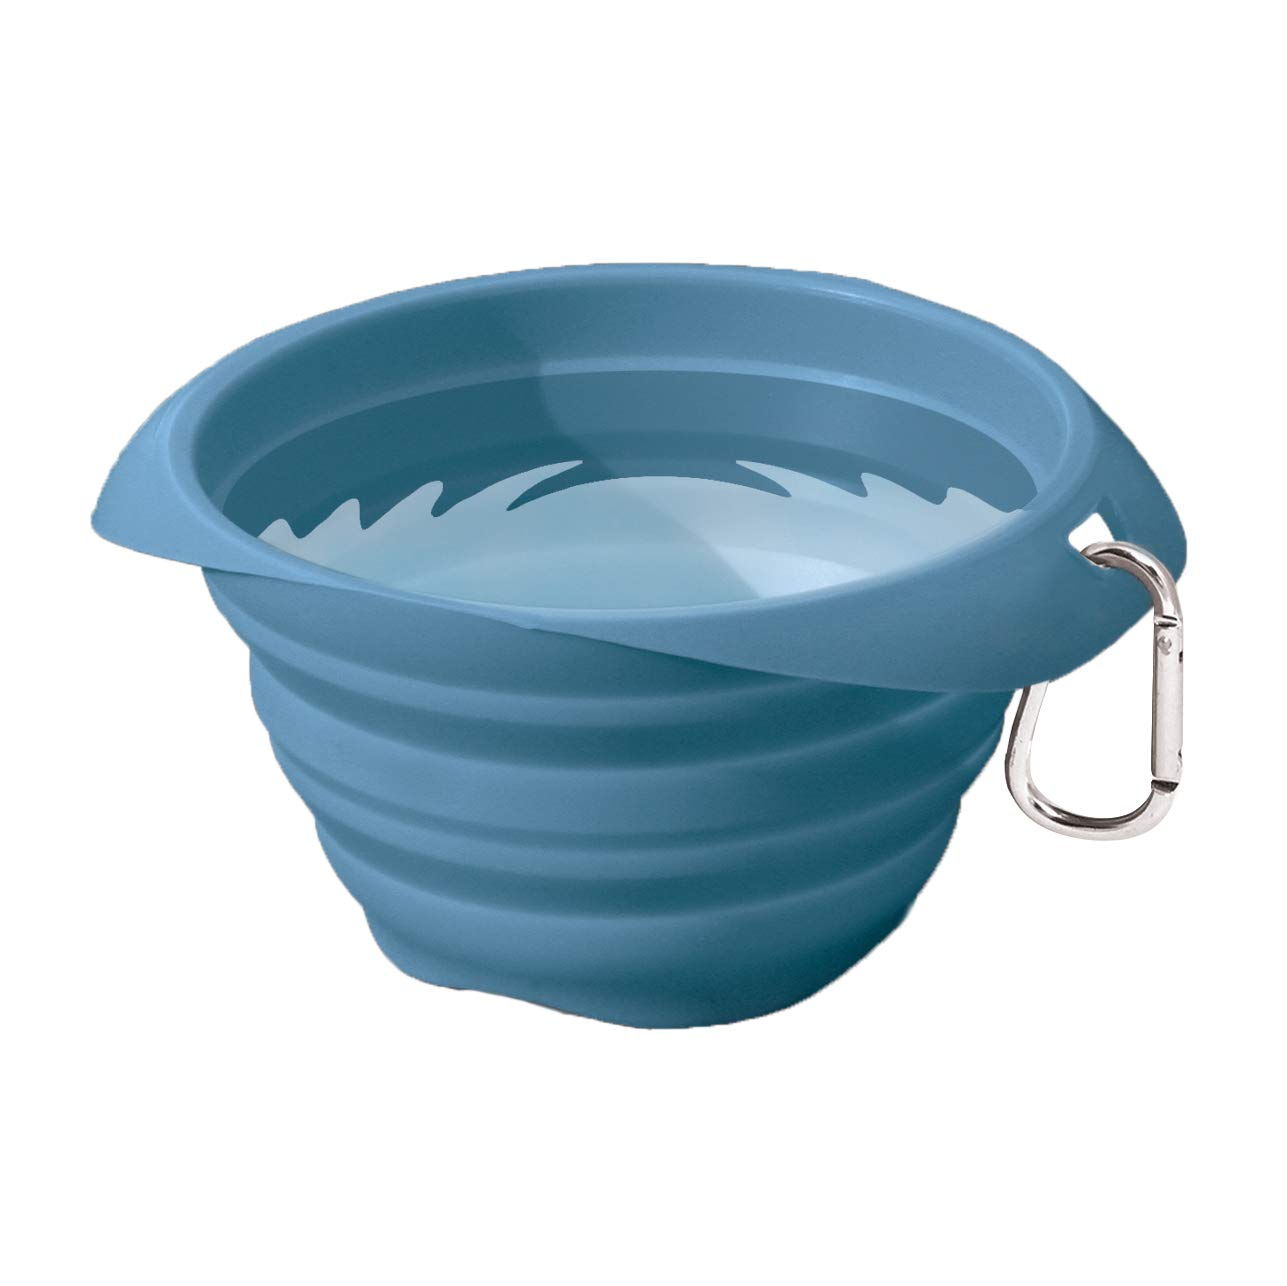 Kurgo Collapsible Travel Dog Bowl | Pet Food & Hiking Water Bowl | Food Grade Silicone Bowl for Dogs | Travel Accessories for Pets | BPA Free | Carabiner | Collaps a Bowl | Mash n' Stash | Zippy Bowl 51JwRwqrNOL